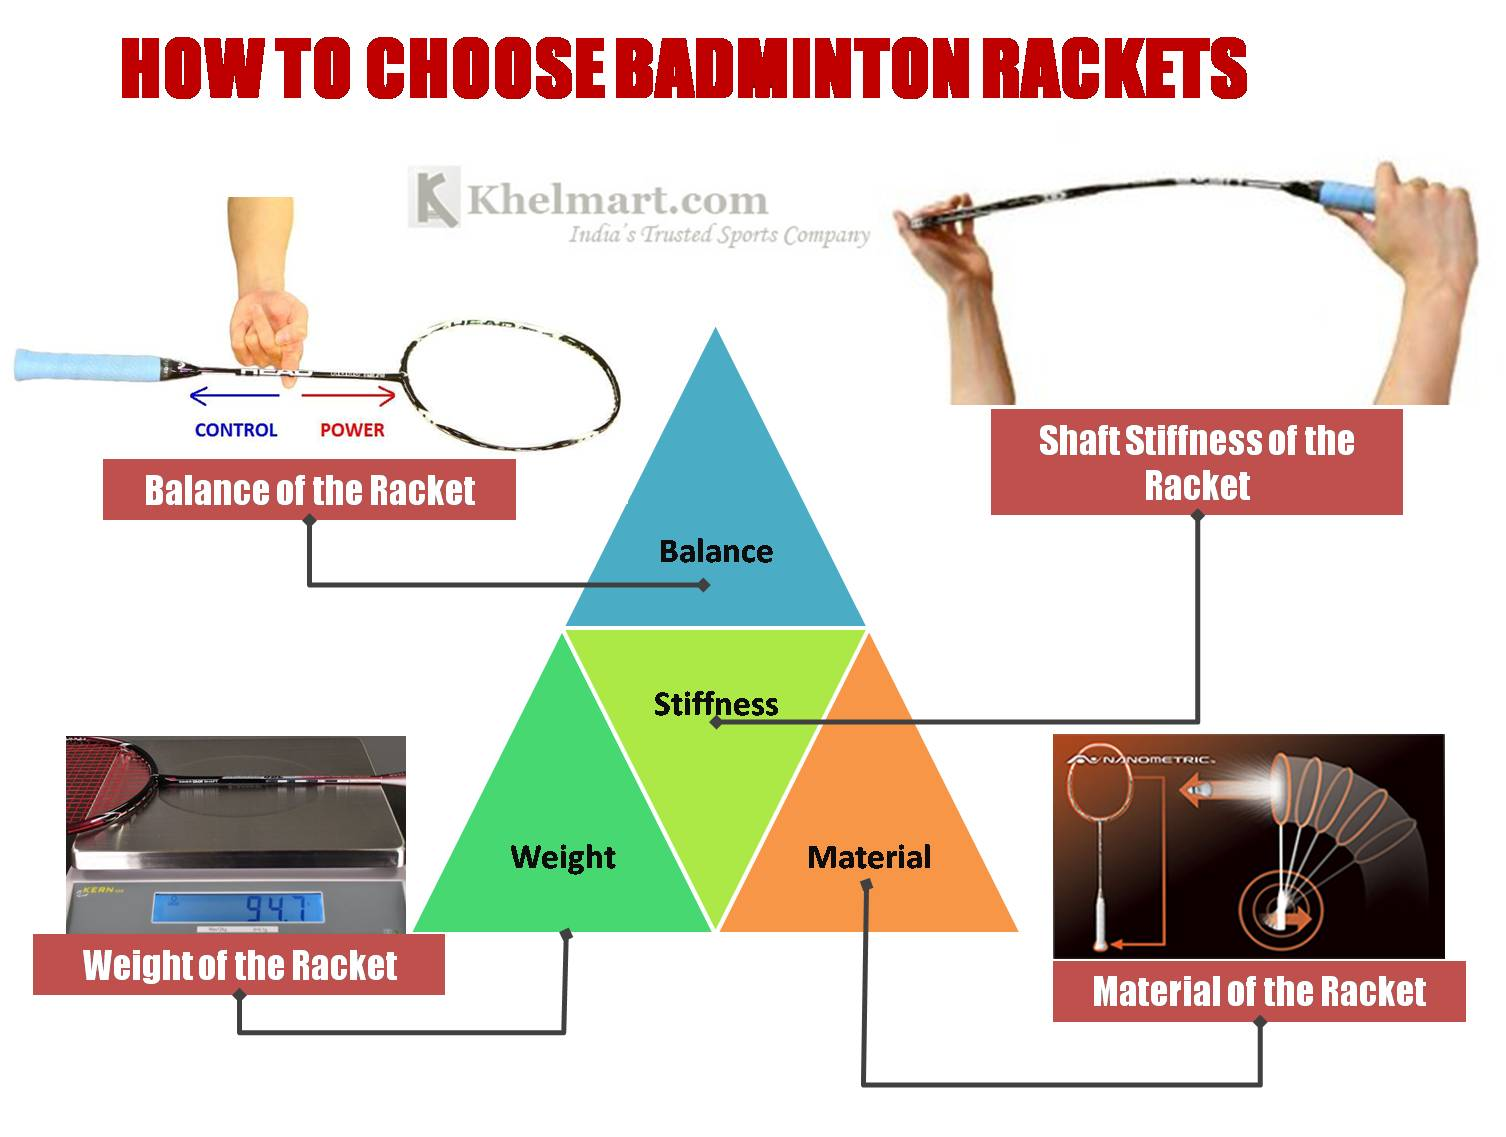 How_to_Choose_the_Badminton_Racket_explanation_khelmart.jpg